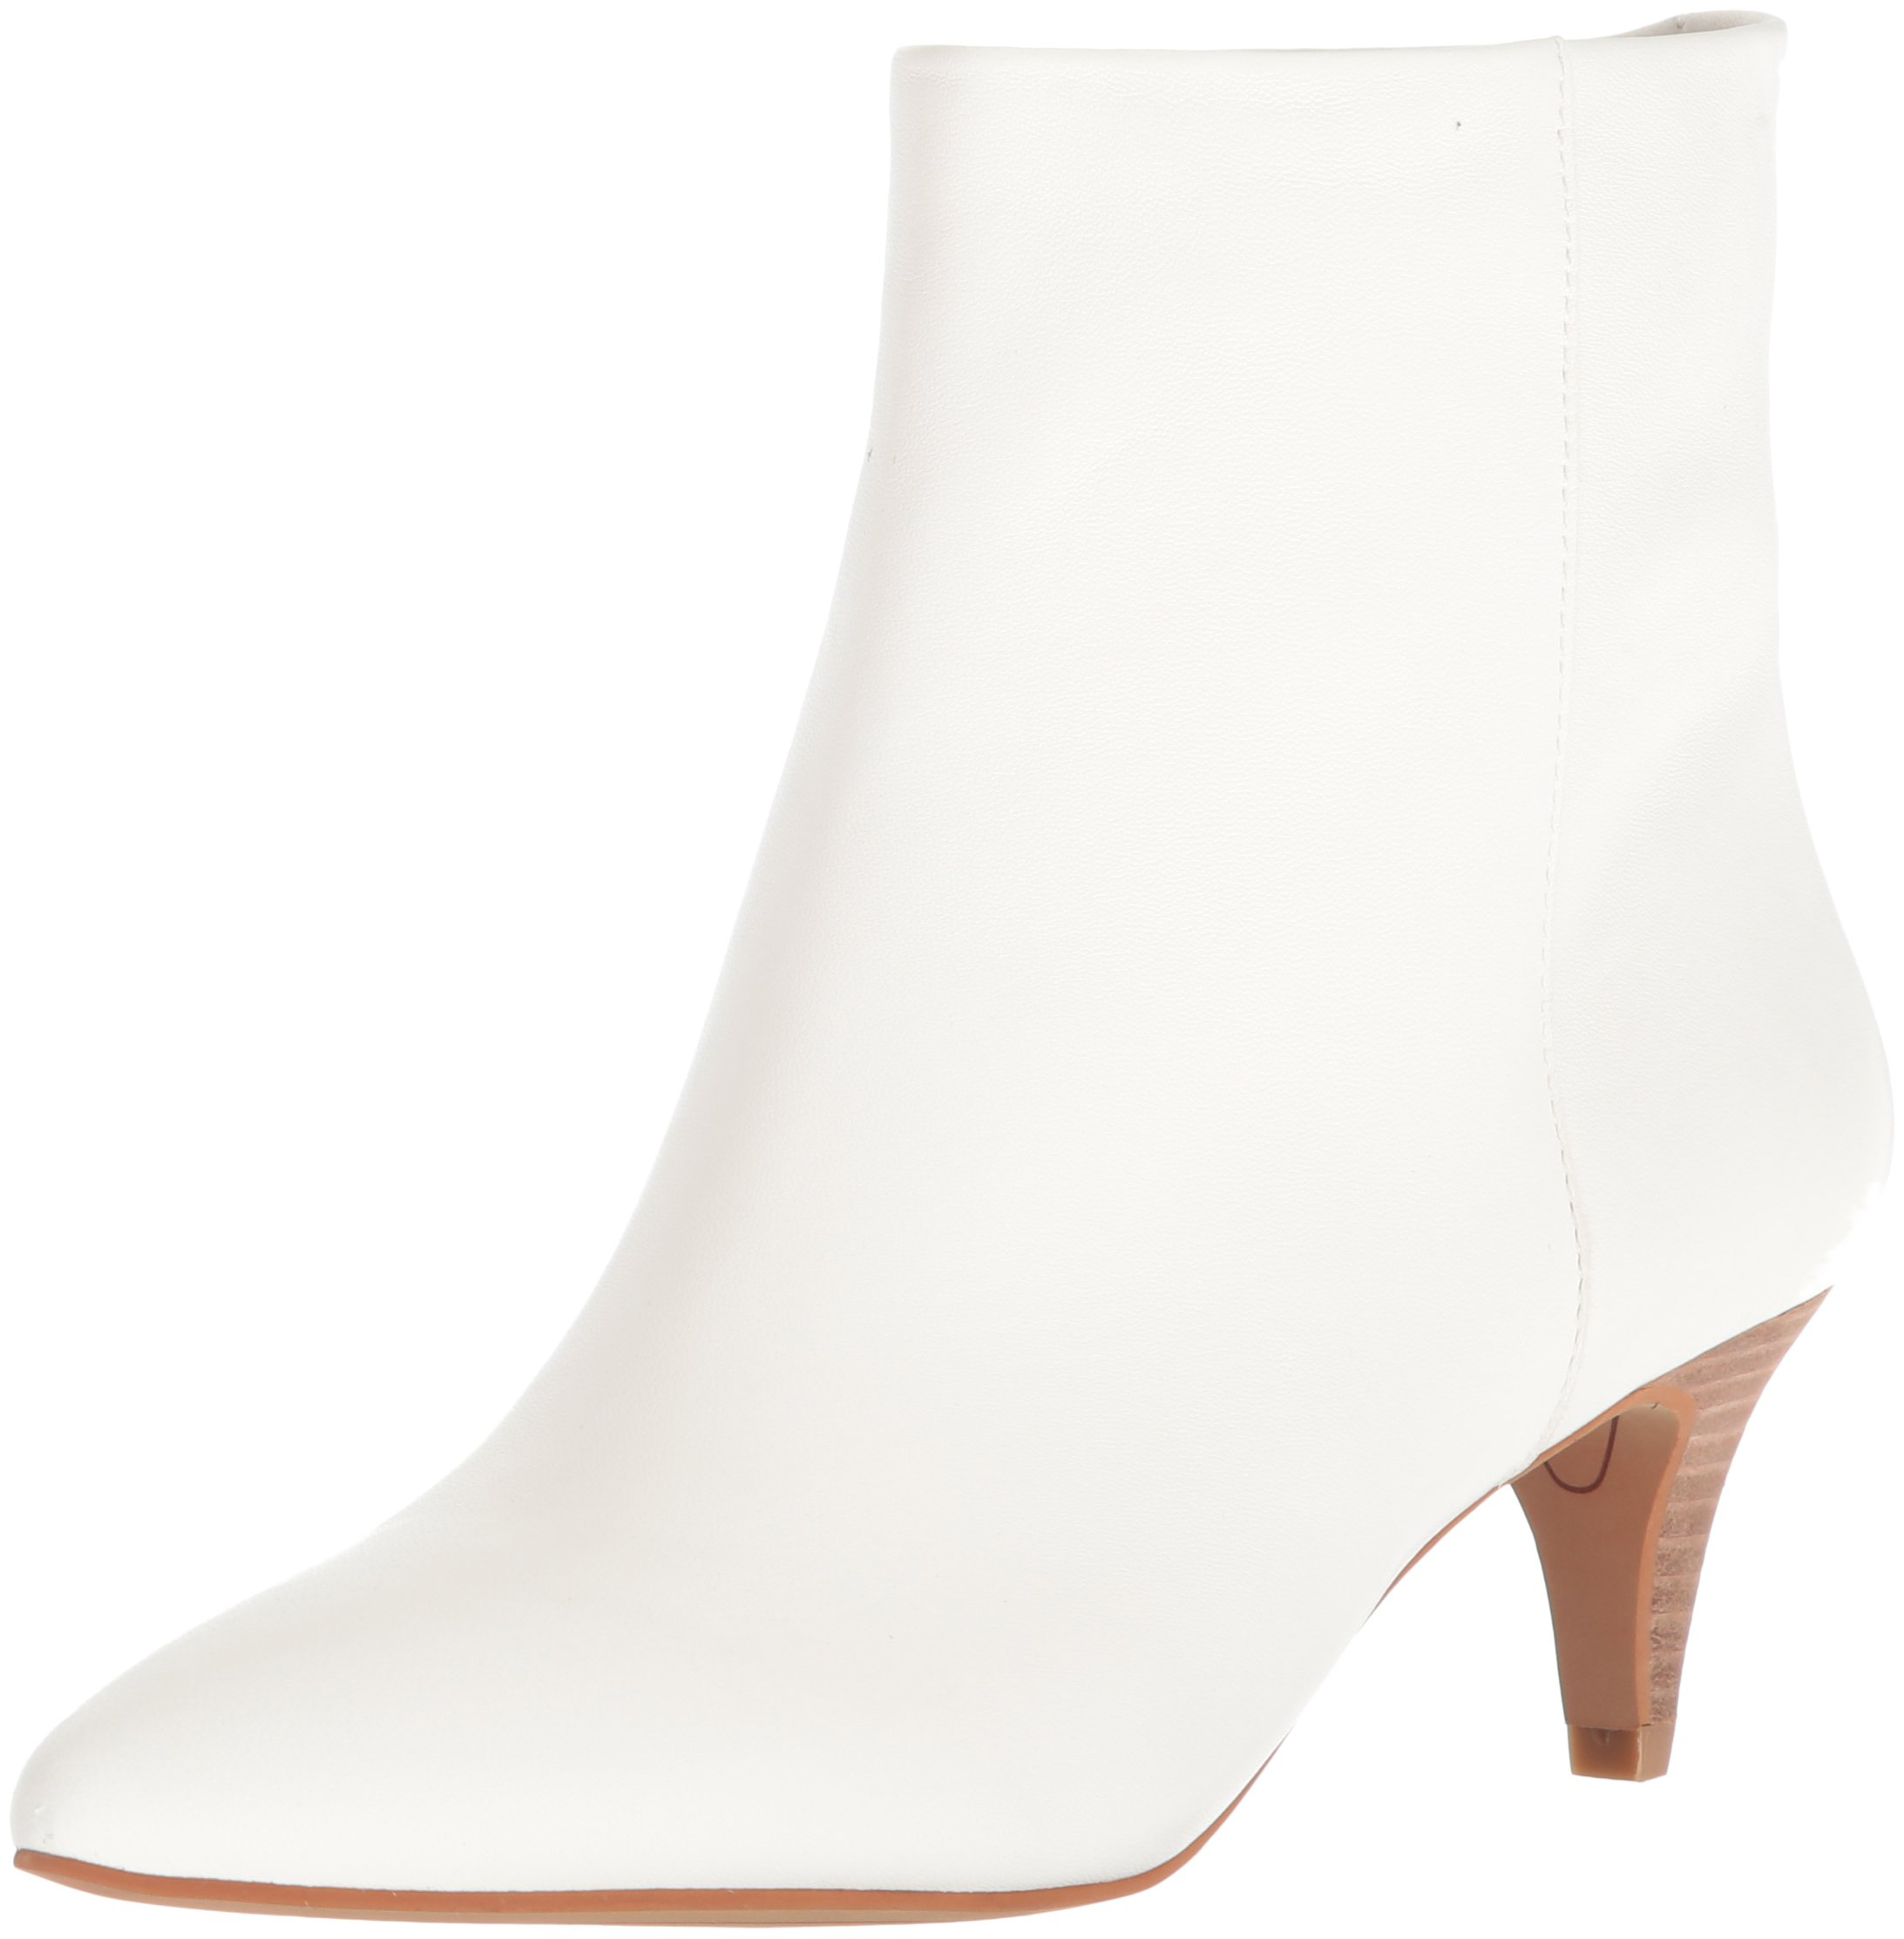 Dolce Vita Women's Deedee Ankle Boot, Off White Leather, 10 M US